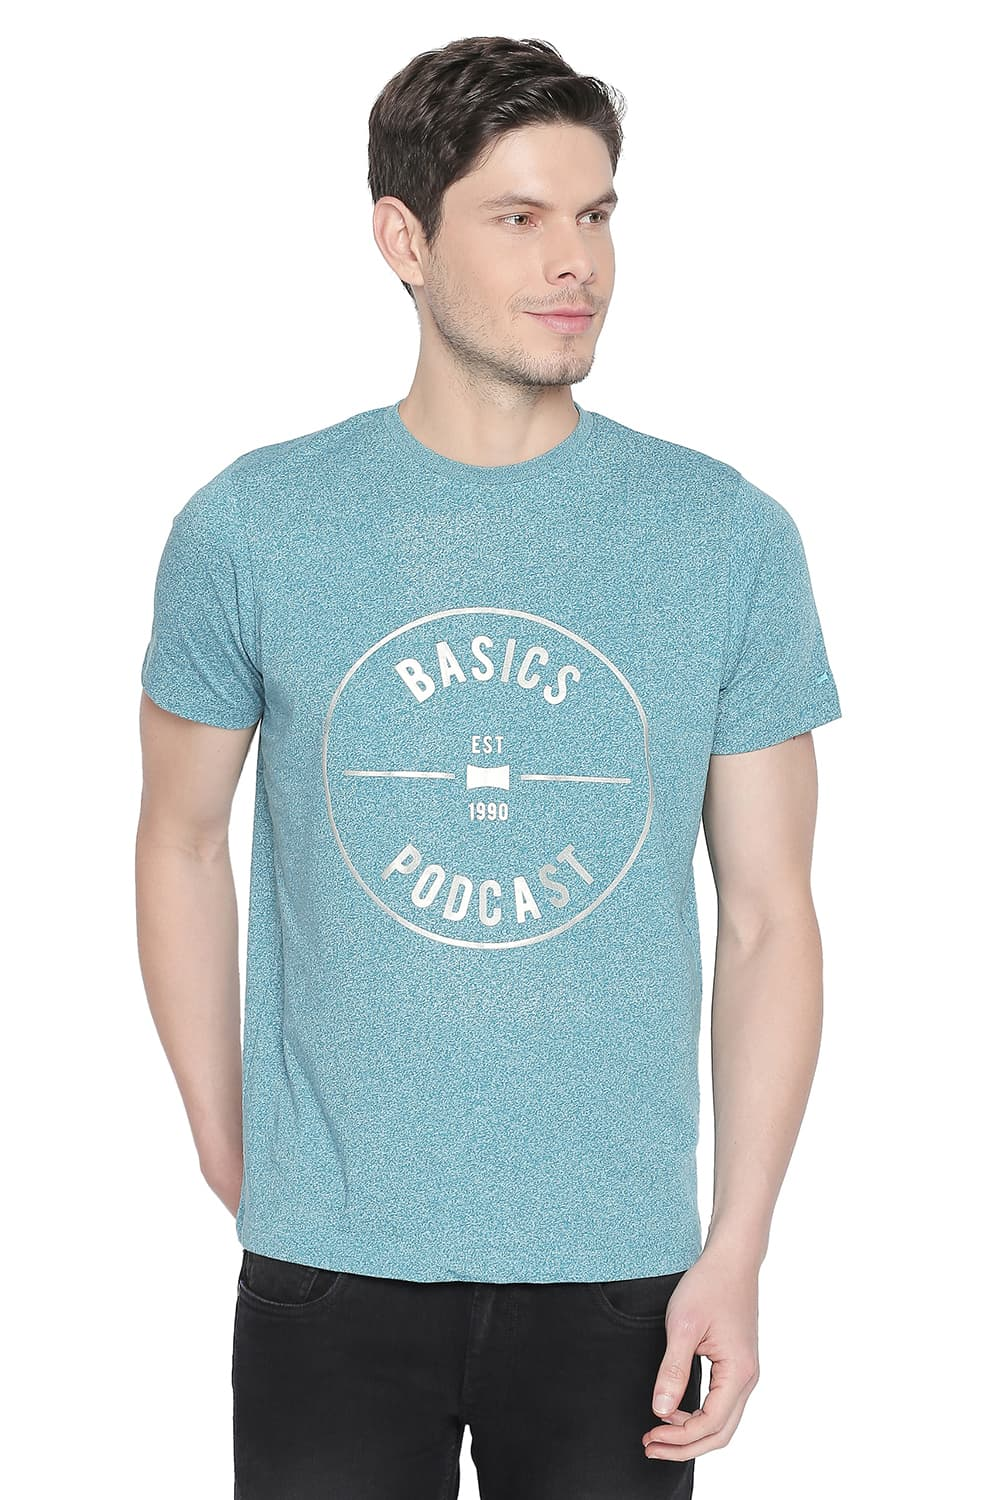 Basics | Basics Muscle Fit Biscay Bay Crew Neck T Shirt